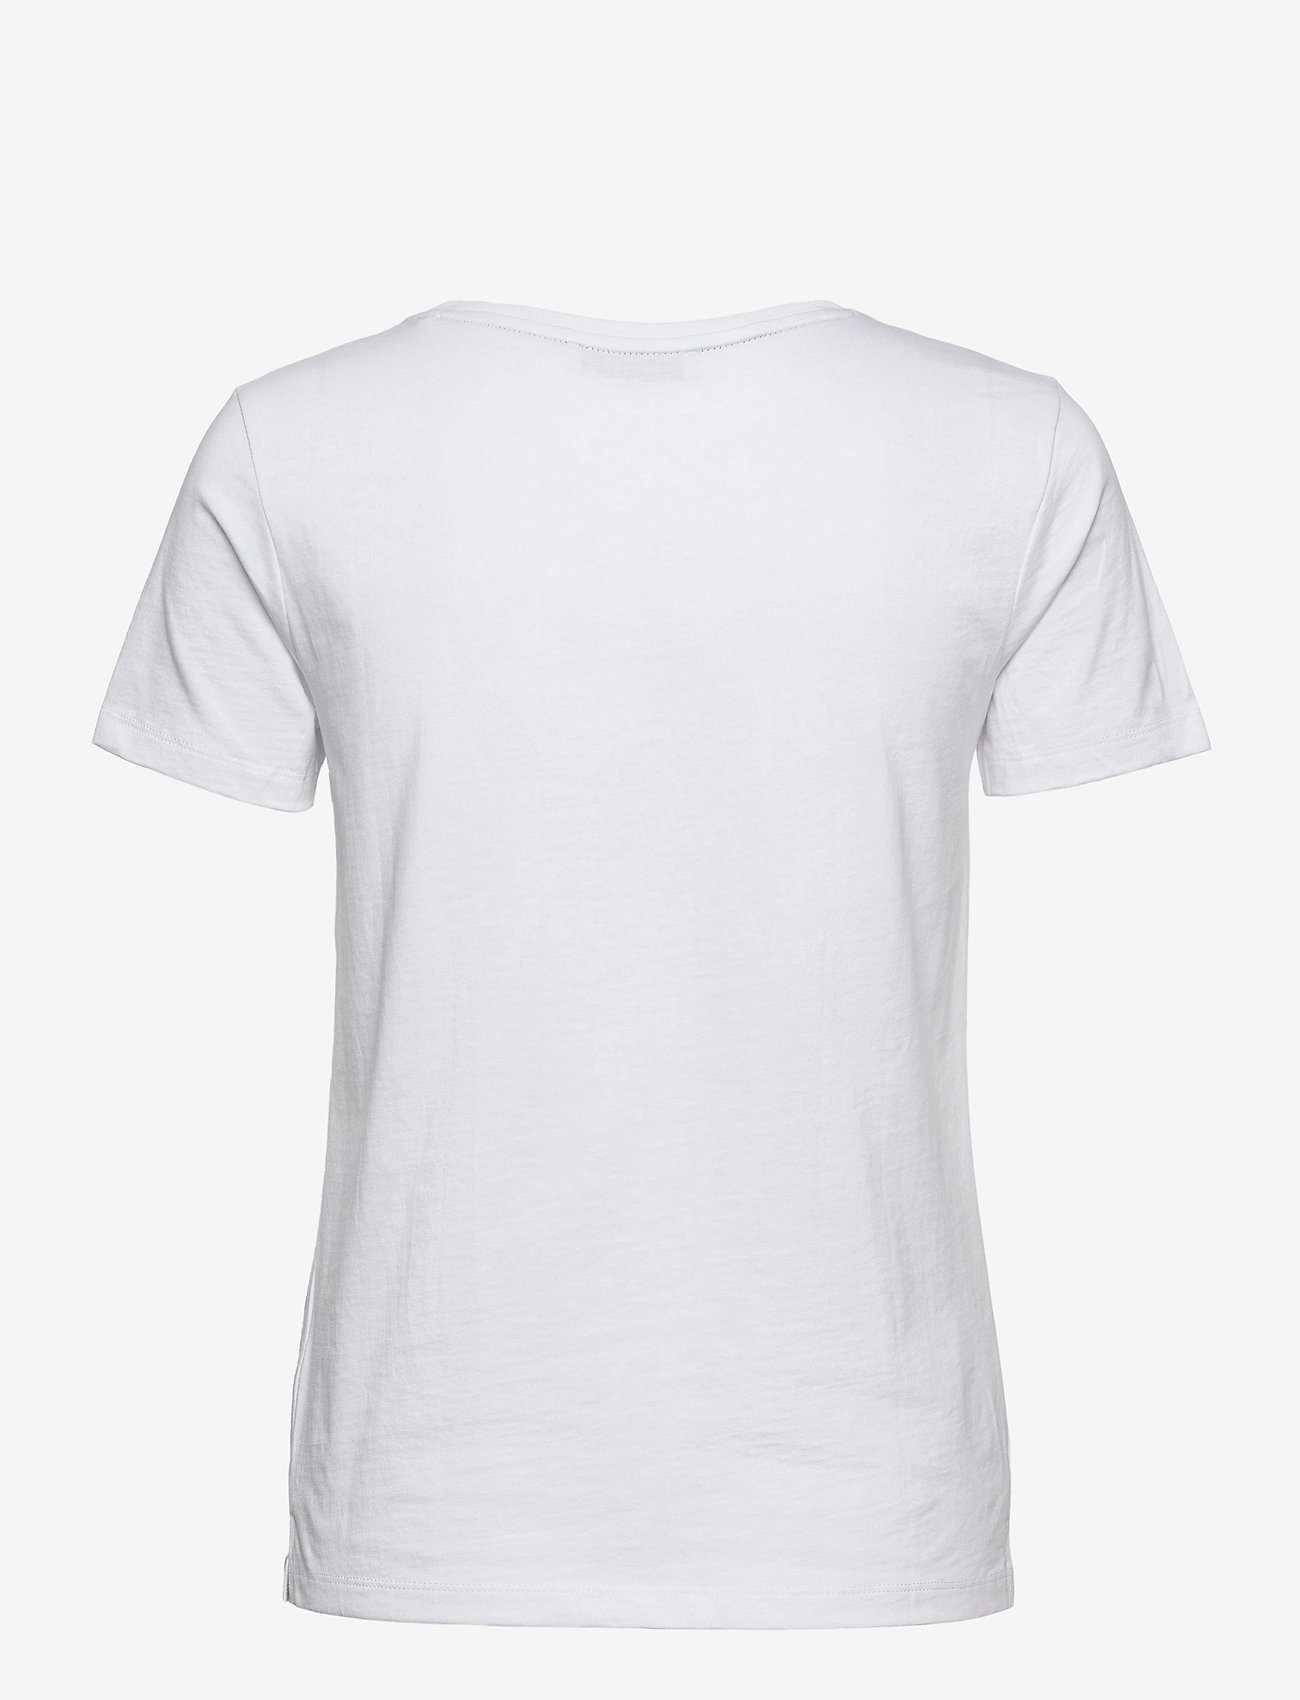 GUESS Jeans - SS CN ICON TEE - t-shirts - true white a000 - 1